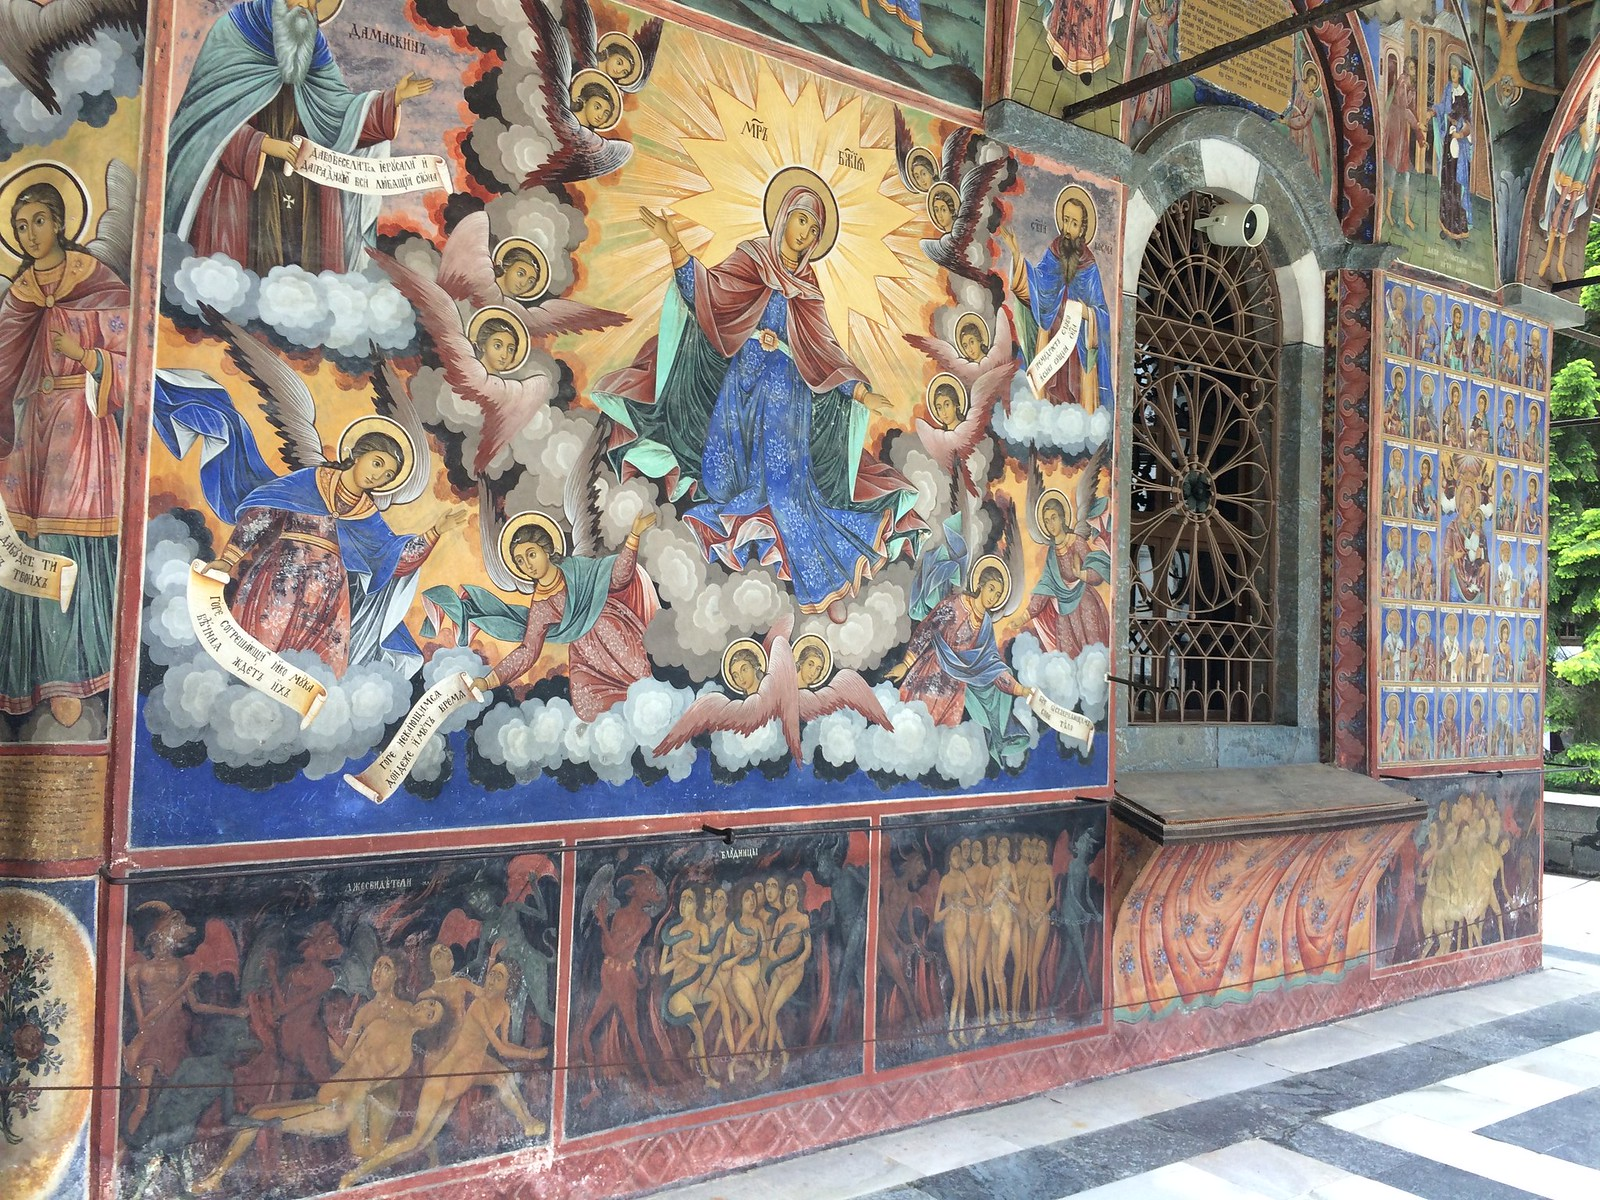 201705 - Balkans - Frescoes on Monastery Church - 20 of 66 - Rila Monastery - Rilski manastir, May 26, 2017